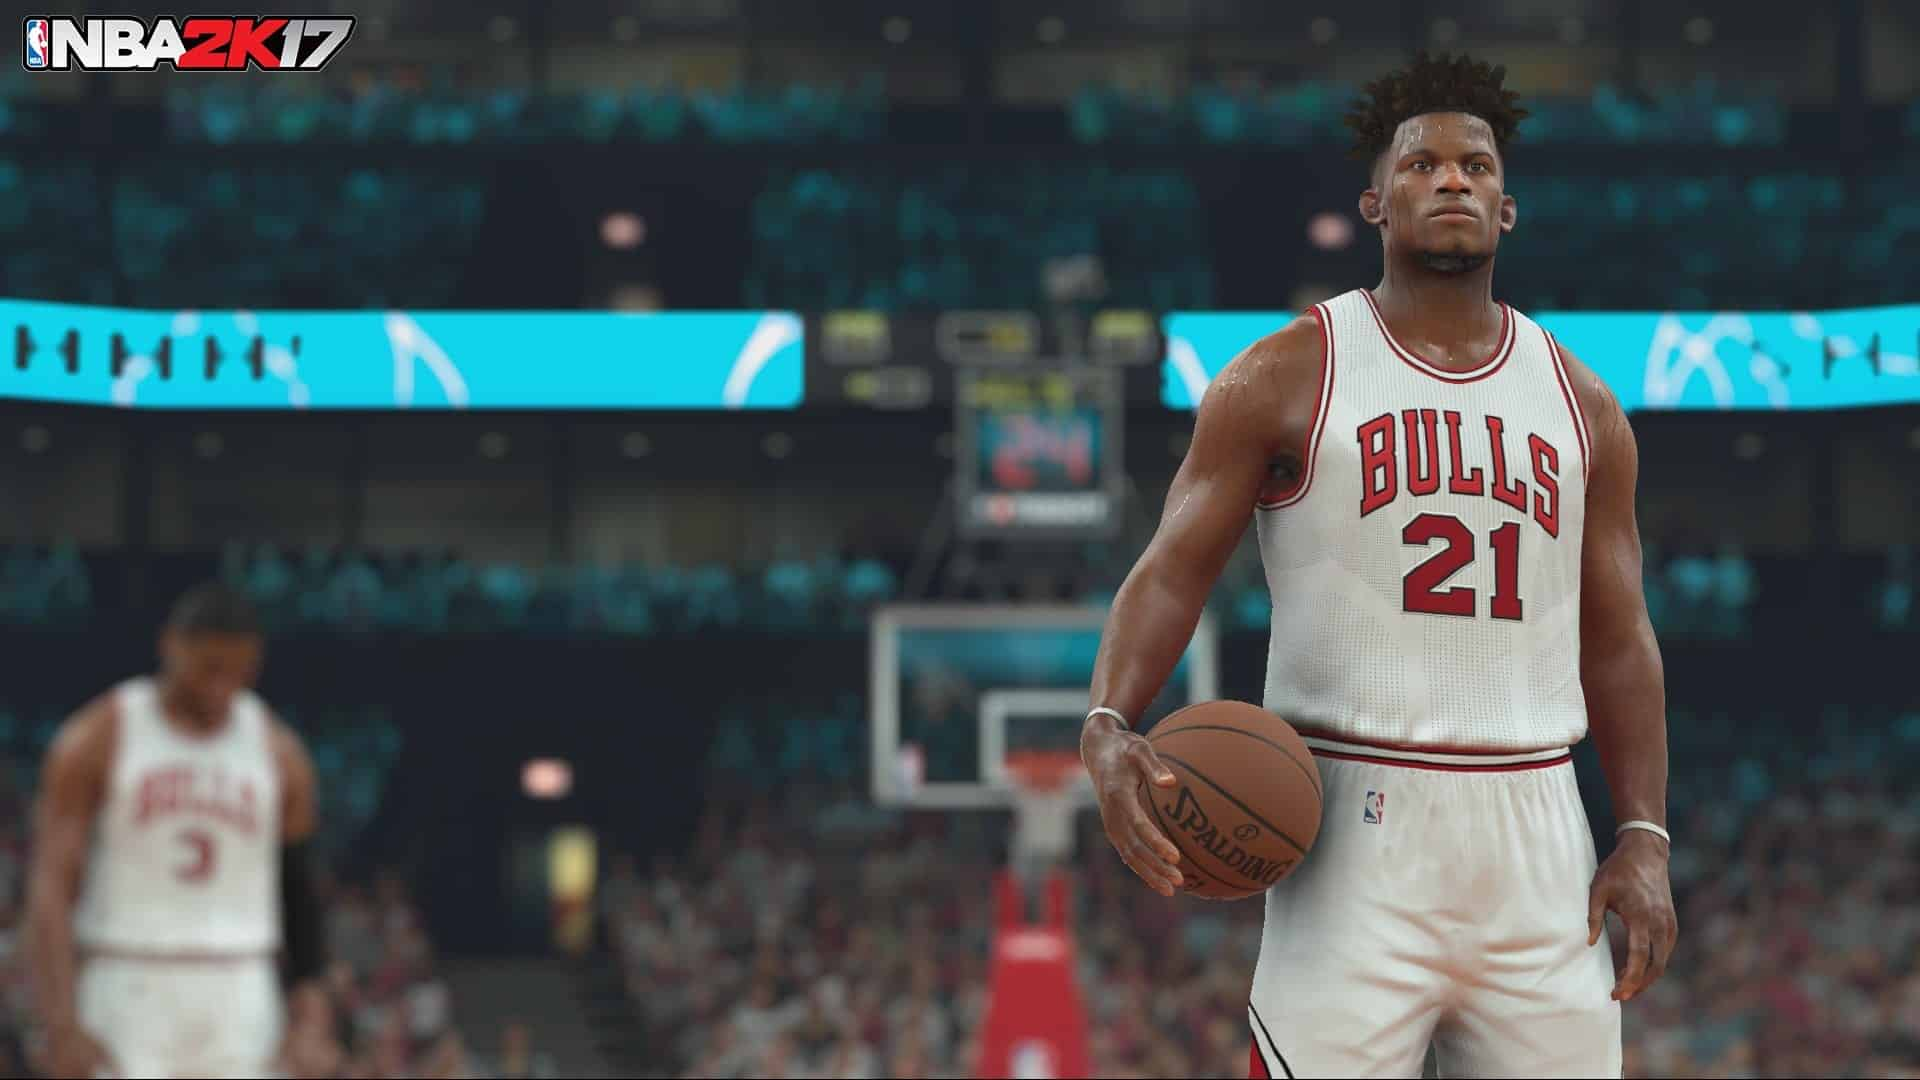 Jimmy Butler 2K17